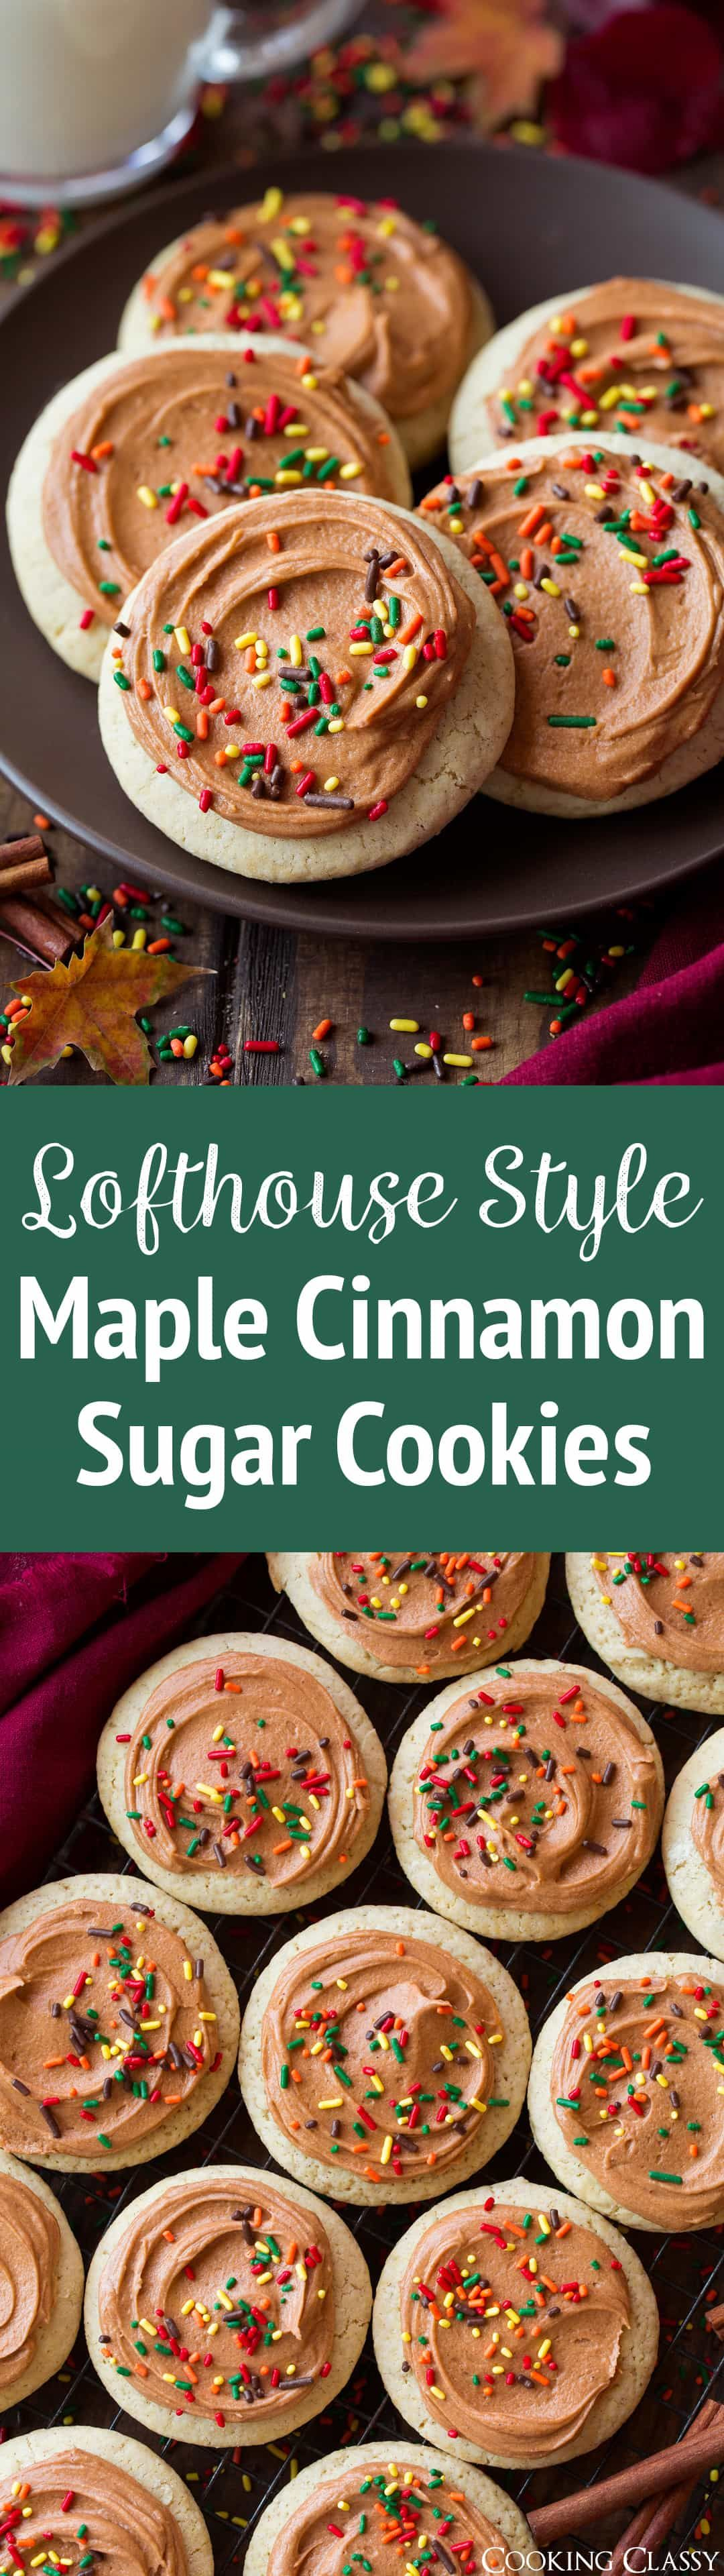 Soft Frosted Maple Cinnamon Sugar Cookies - Cooking Classy